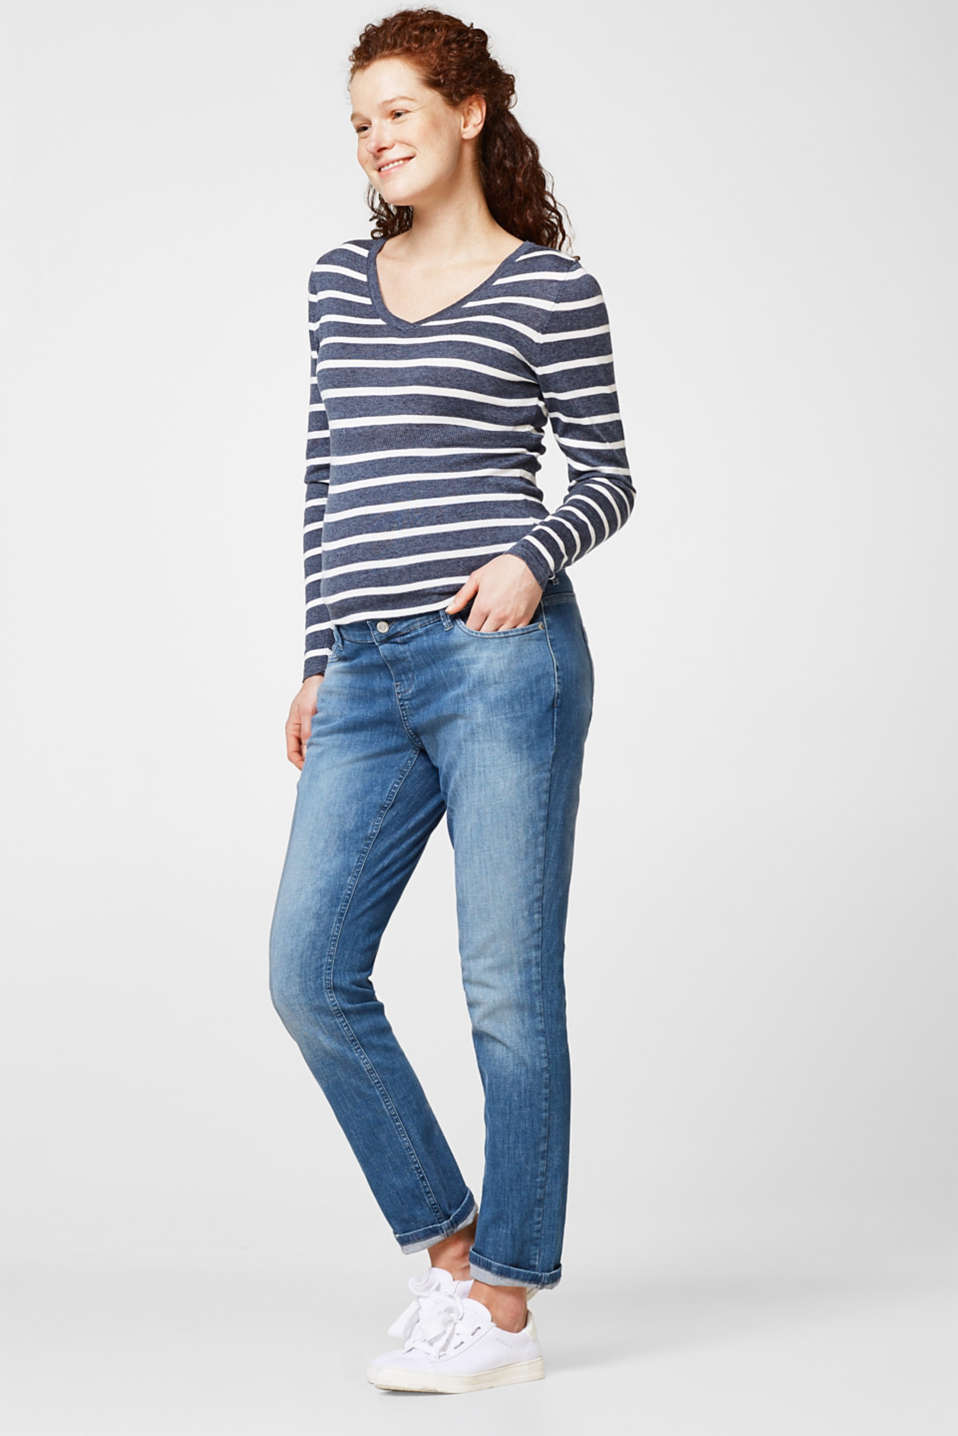 Esprit - Super stretchy over-the-bump jeans